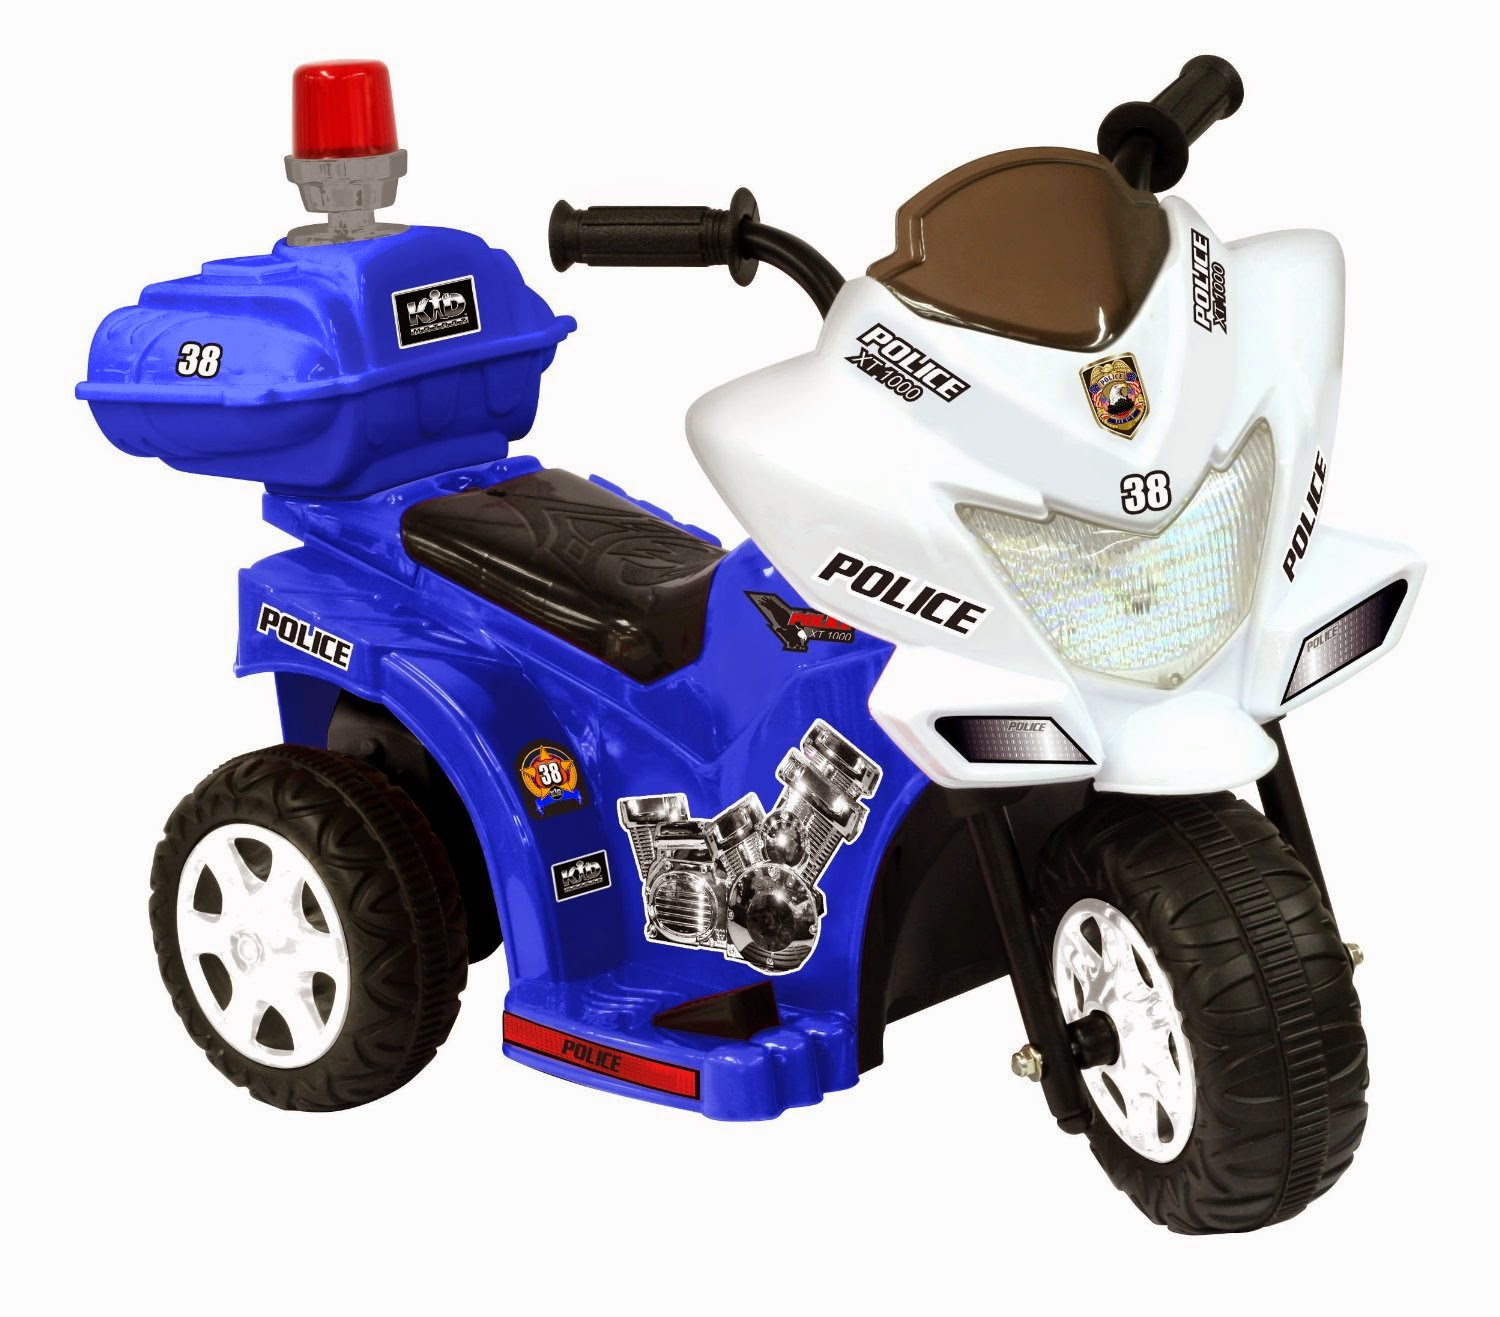 Lil Patrol 6v Blue And White Toy Game Fisher Price Harley Davidson Ride On Tough Trike